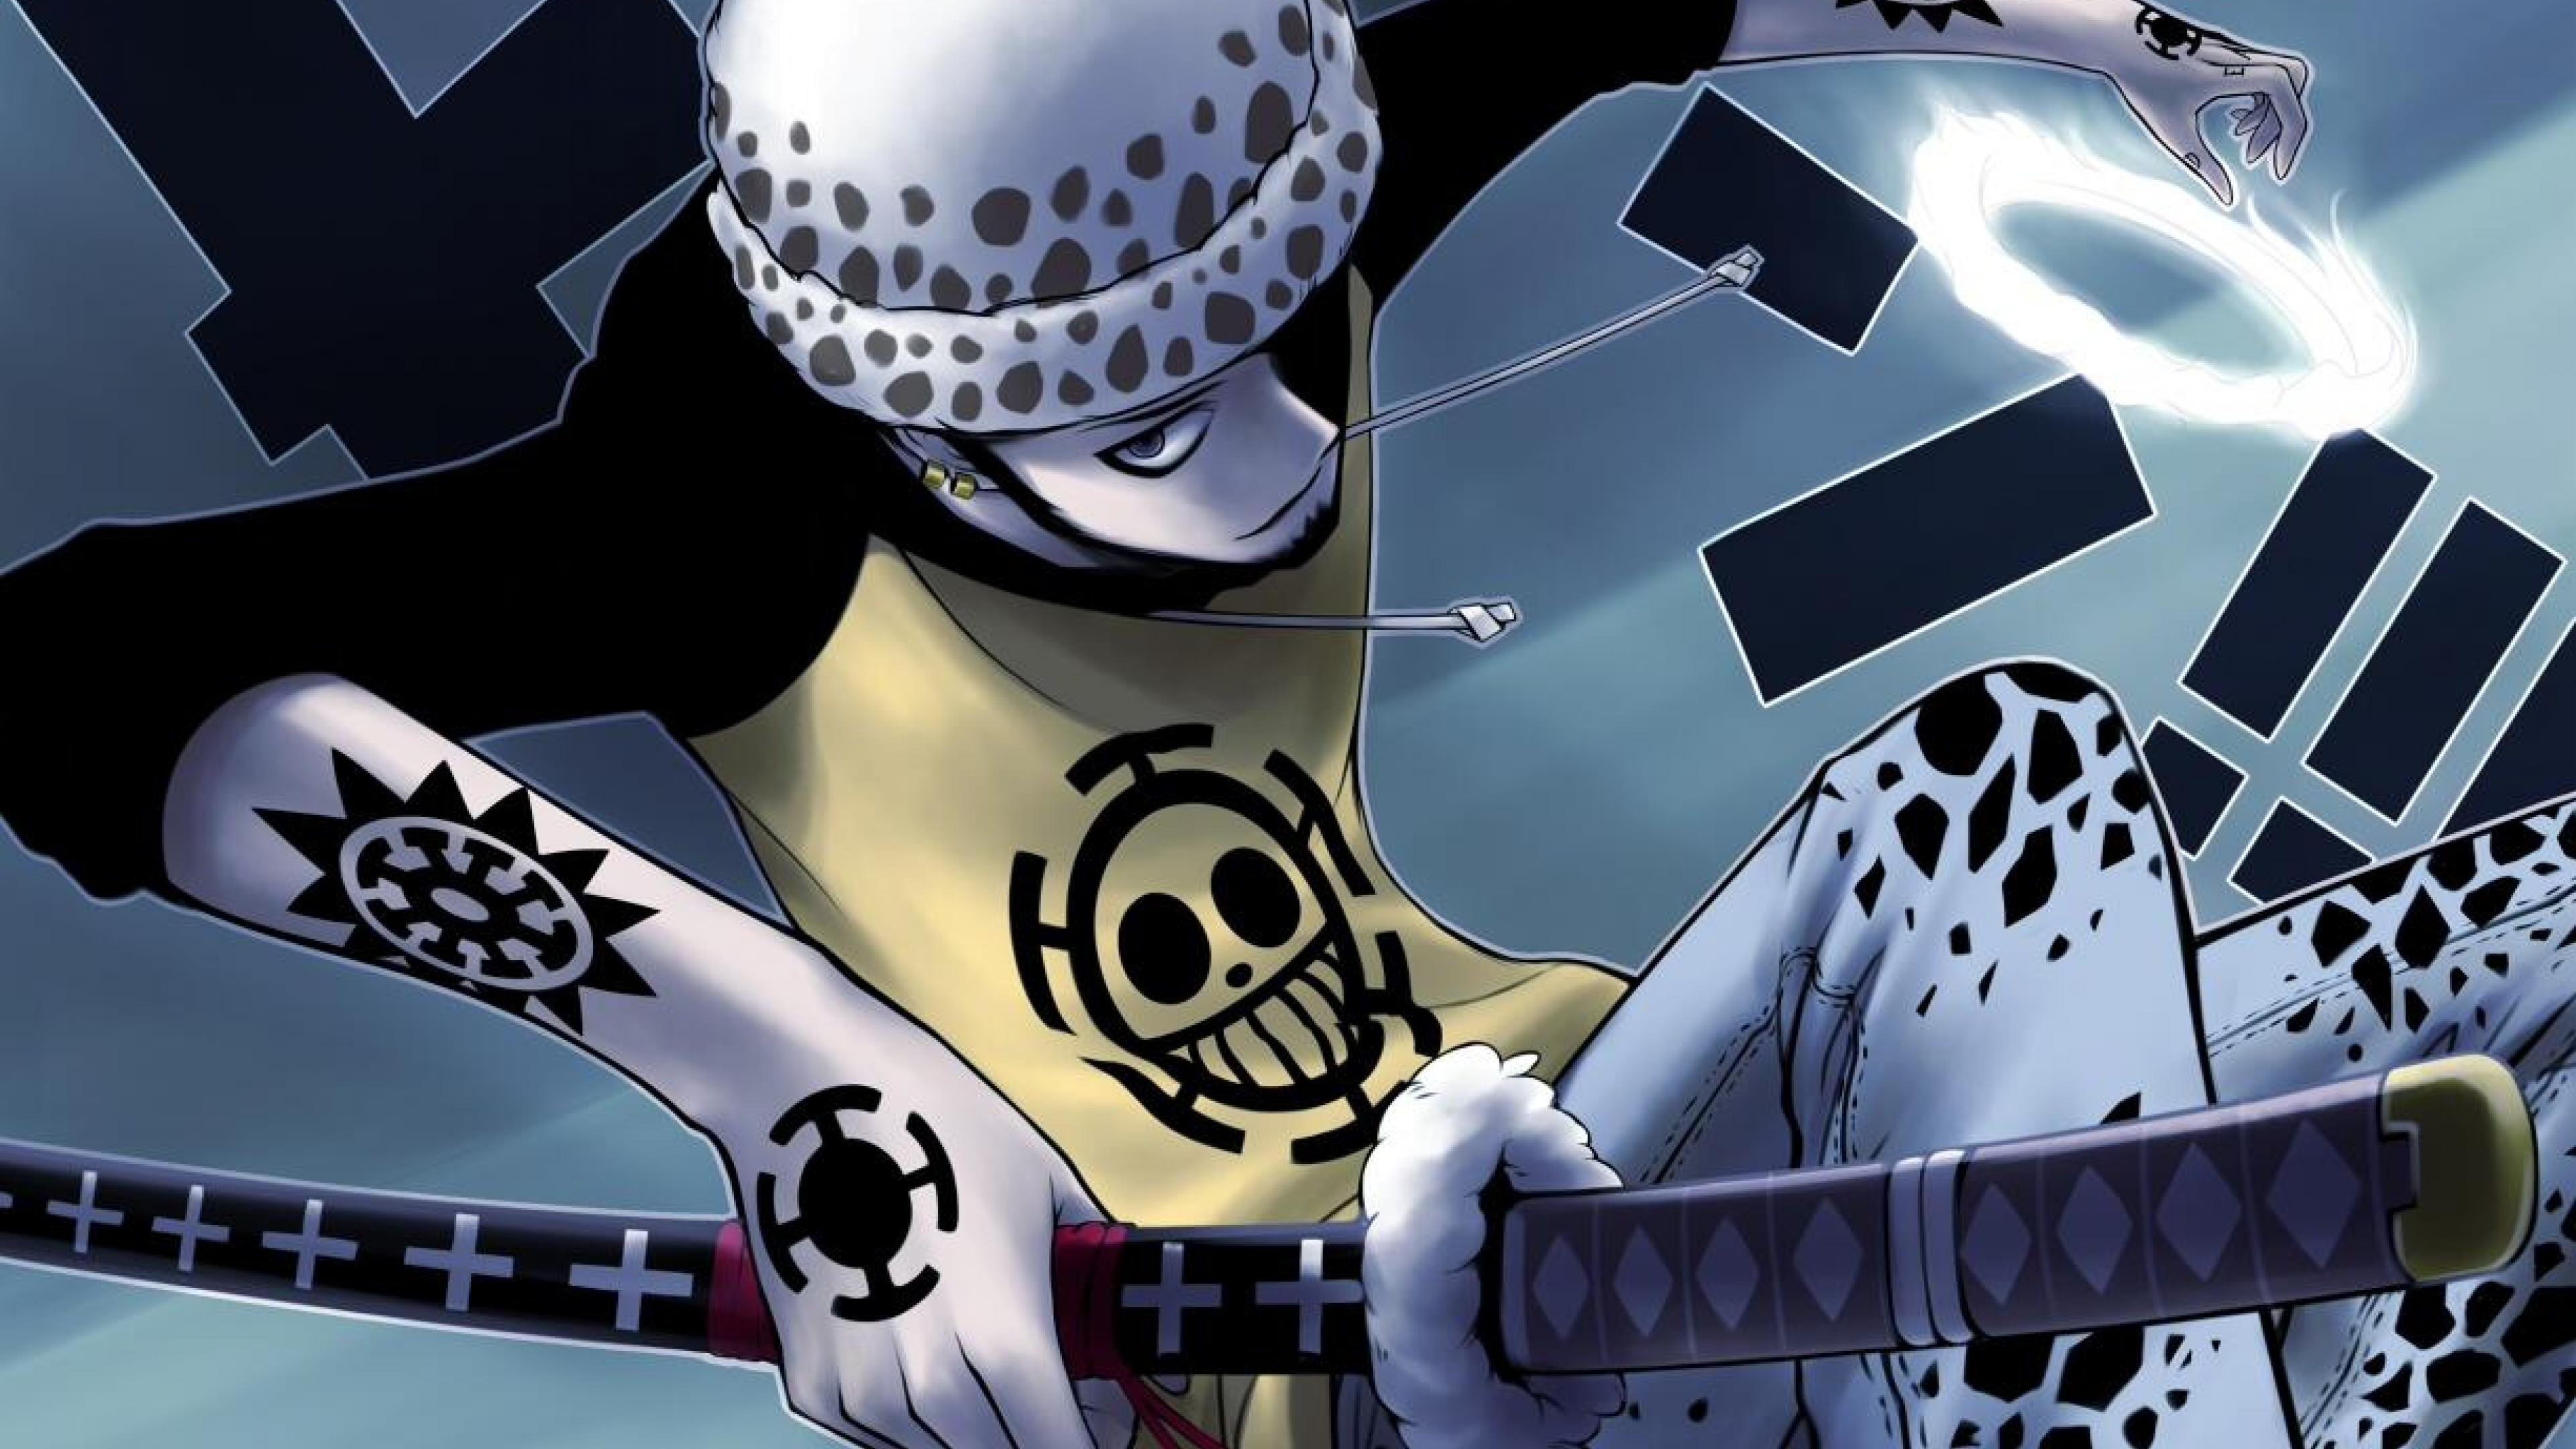 One Piece Law Wallpapers On Wallpaperdog Trafalgar law in one piece wallpaper for free download in different resolution hd widescreen 4k 5k 8k ultra hd wallpaper support different devices like 161 trafalgar law hd wallpapers and background images. one piece law wallpapers on wallpaperdog